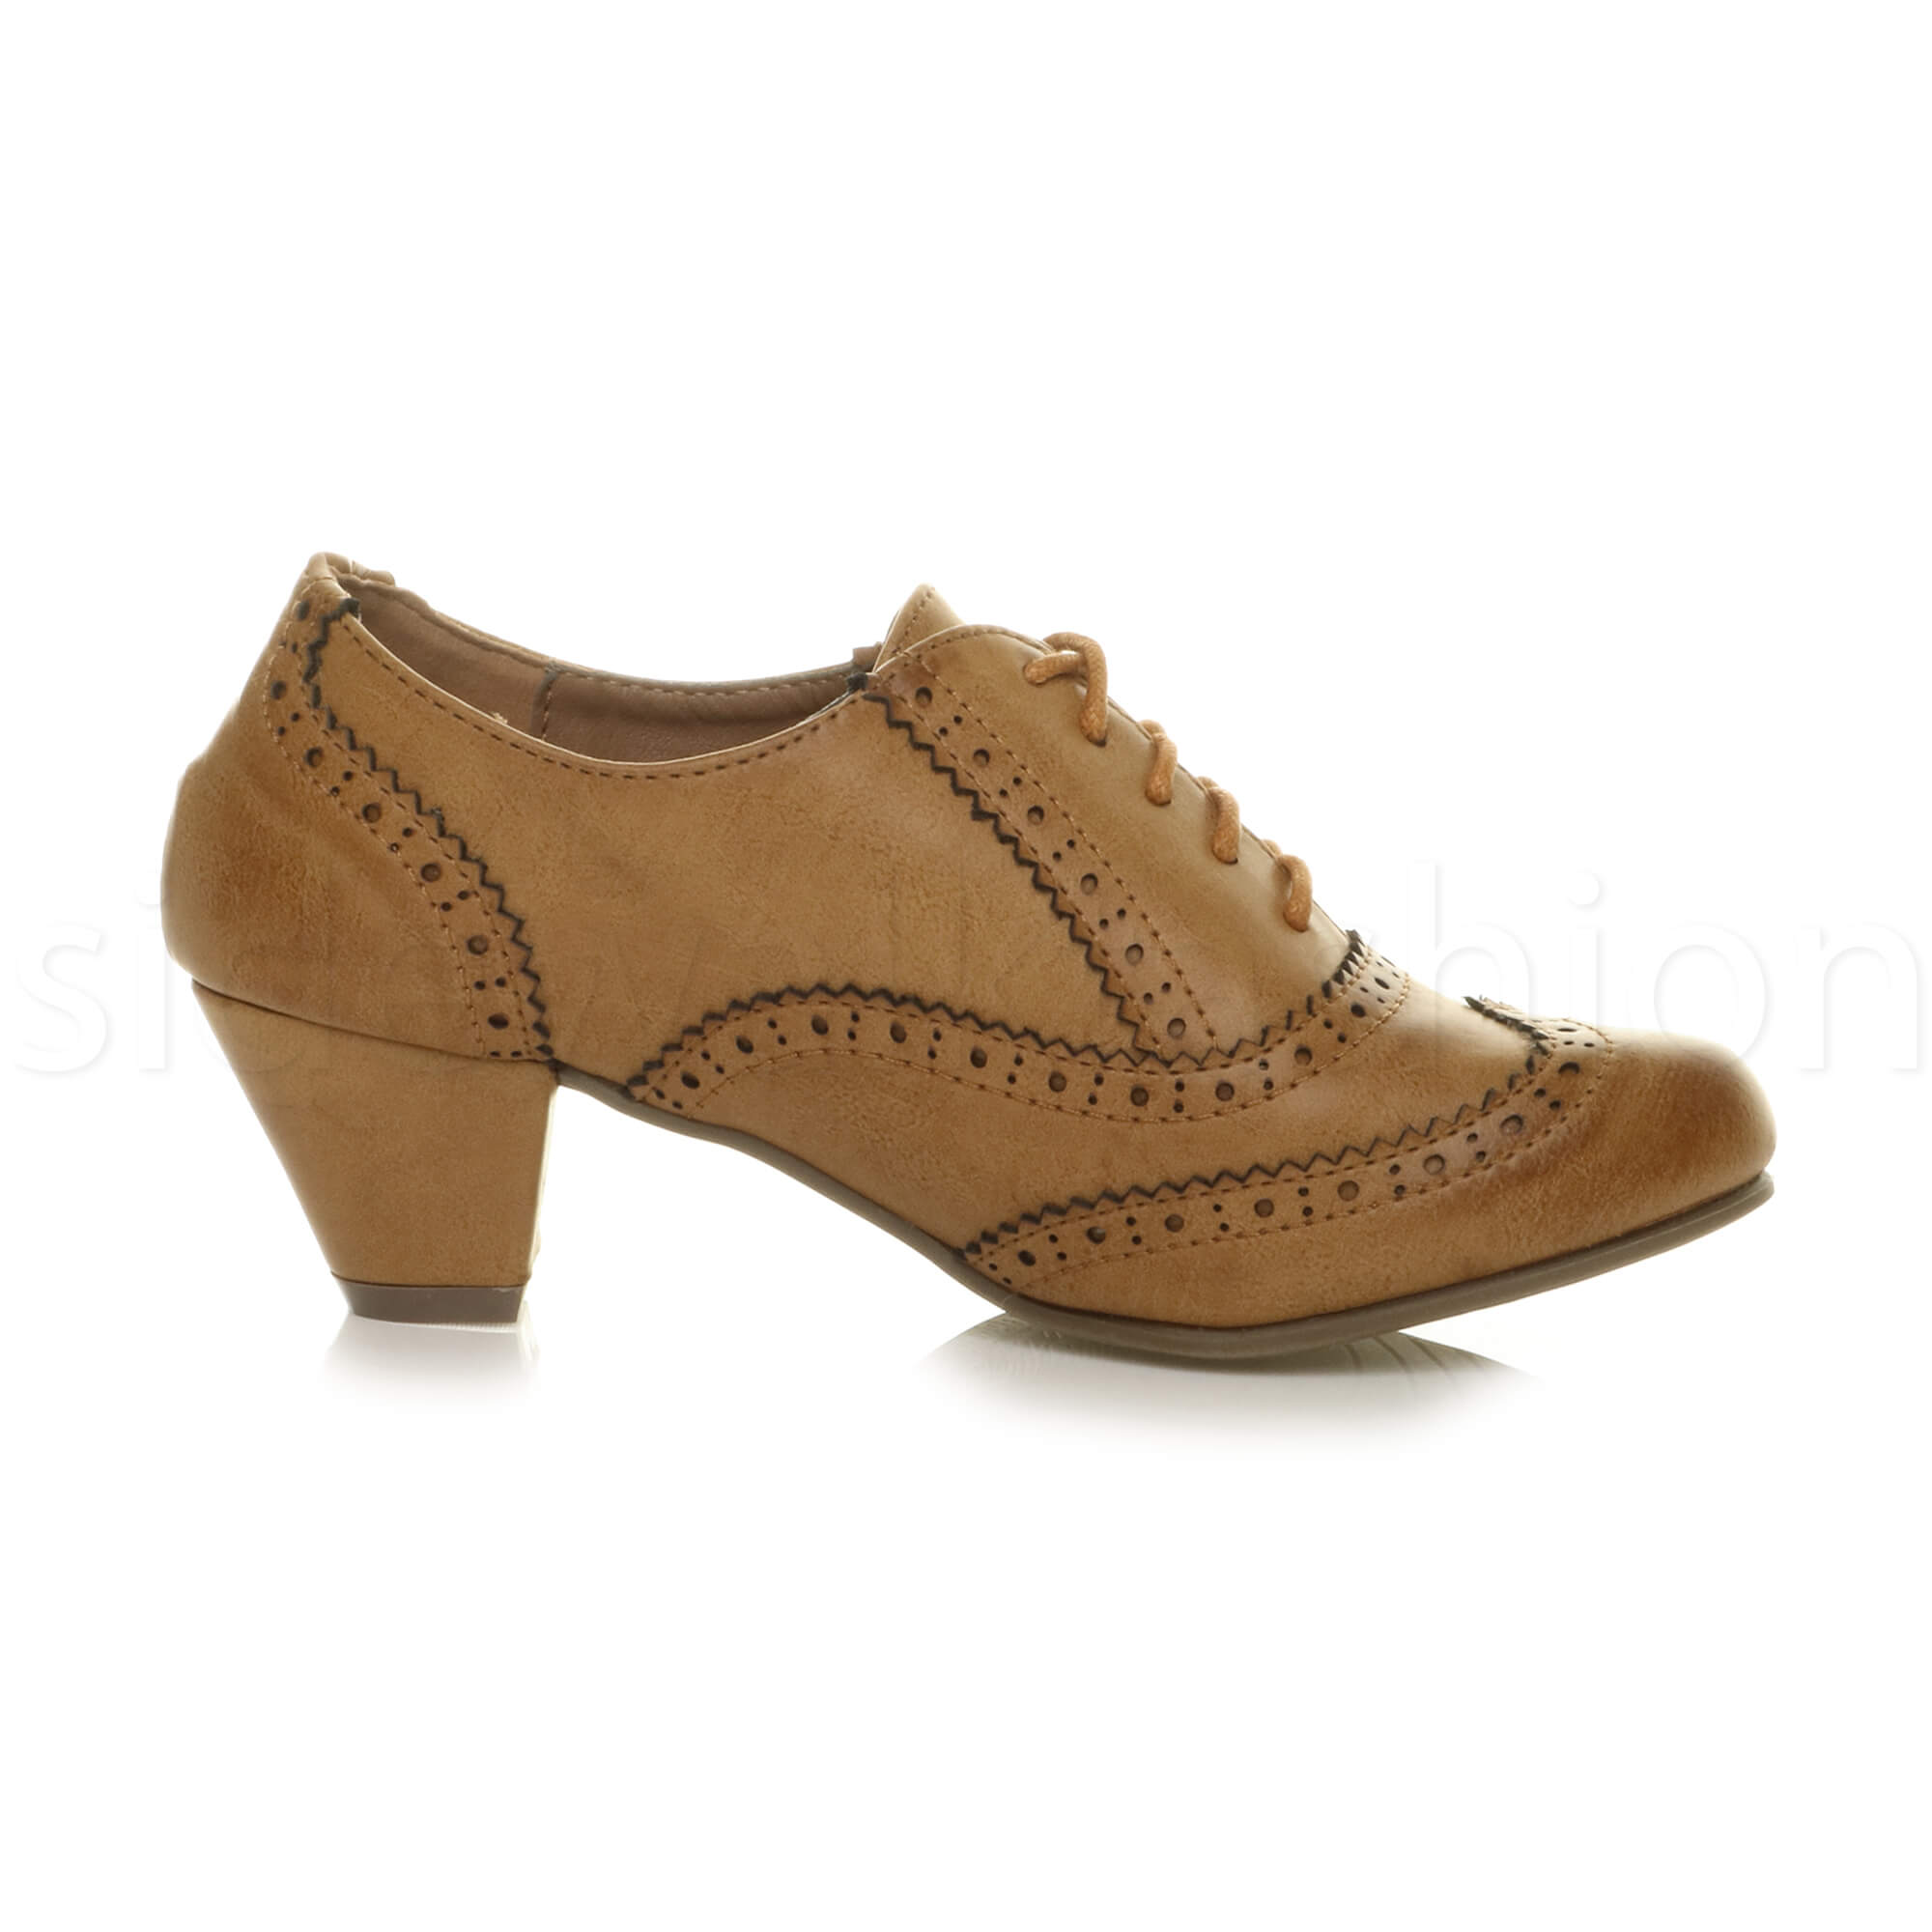 Mid-low heels are a kind of shoes which have been in the fashion market and are increasingly invading women's wardrobes. Most women love heels. Most women love heels. They make you look stylish in a room of other people.